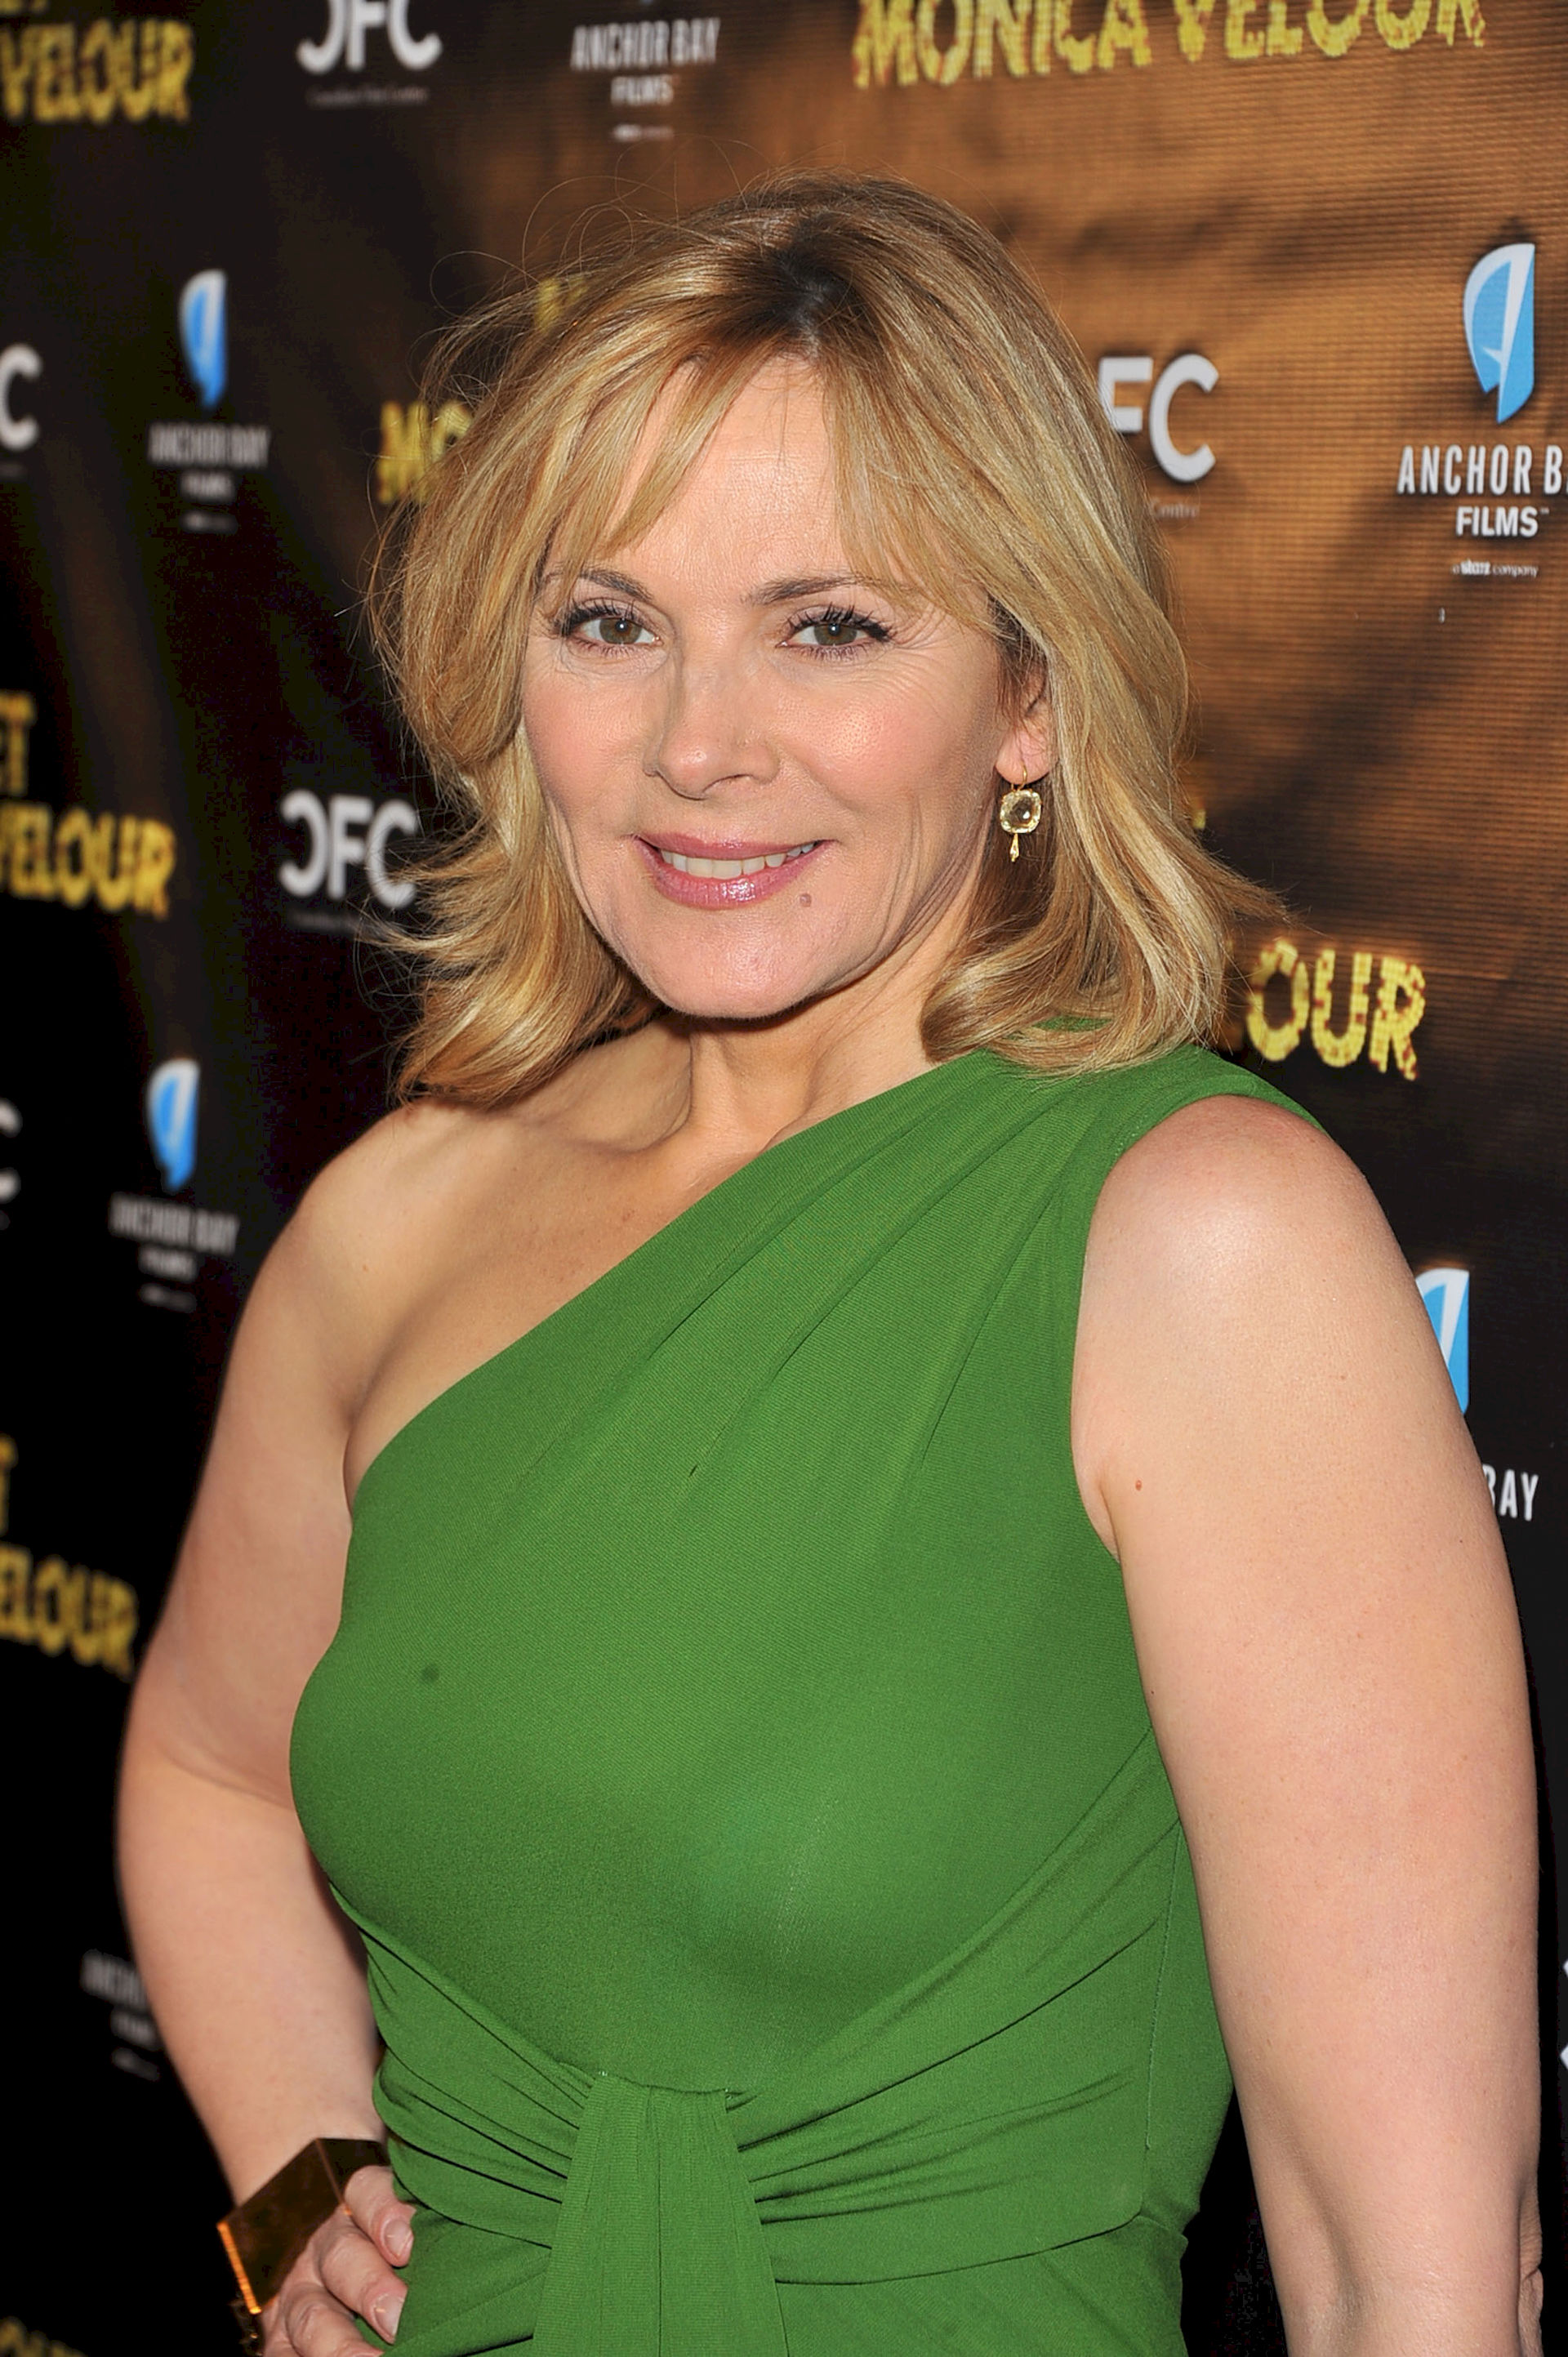 Photo of Kim Cattrall: English born actress